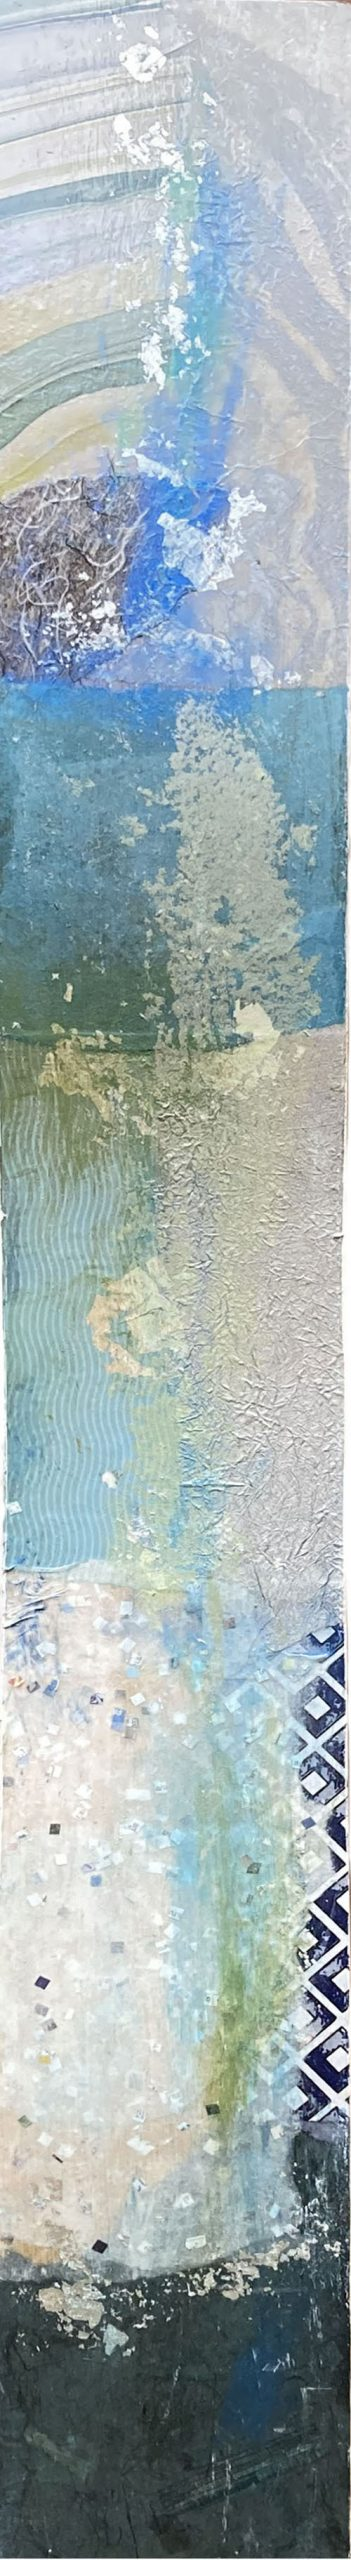 Paul Tiersky blue water-esque collage on wavy white panel